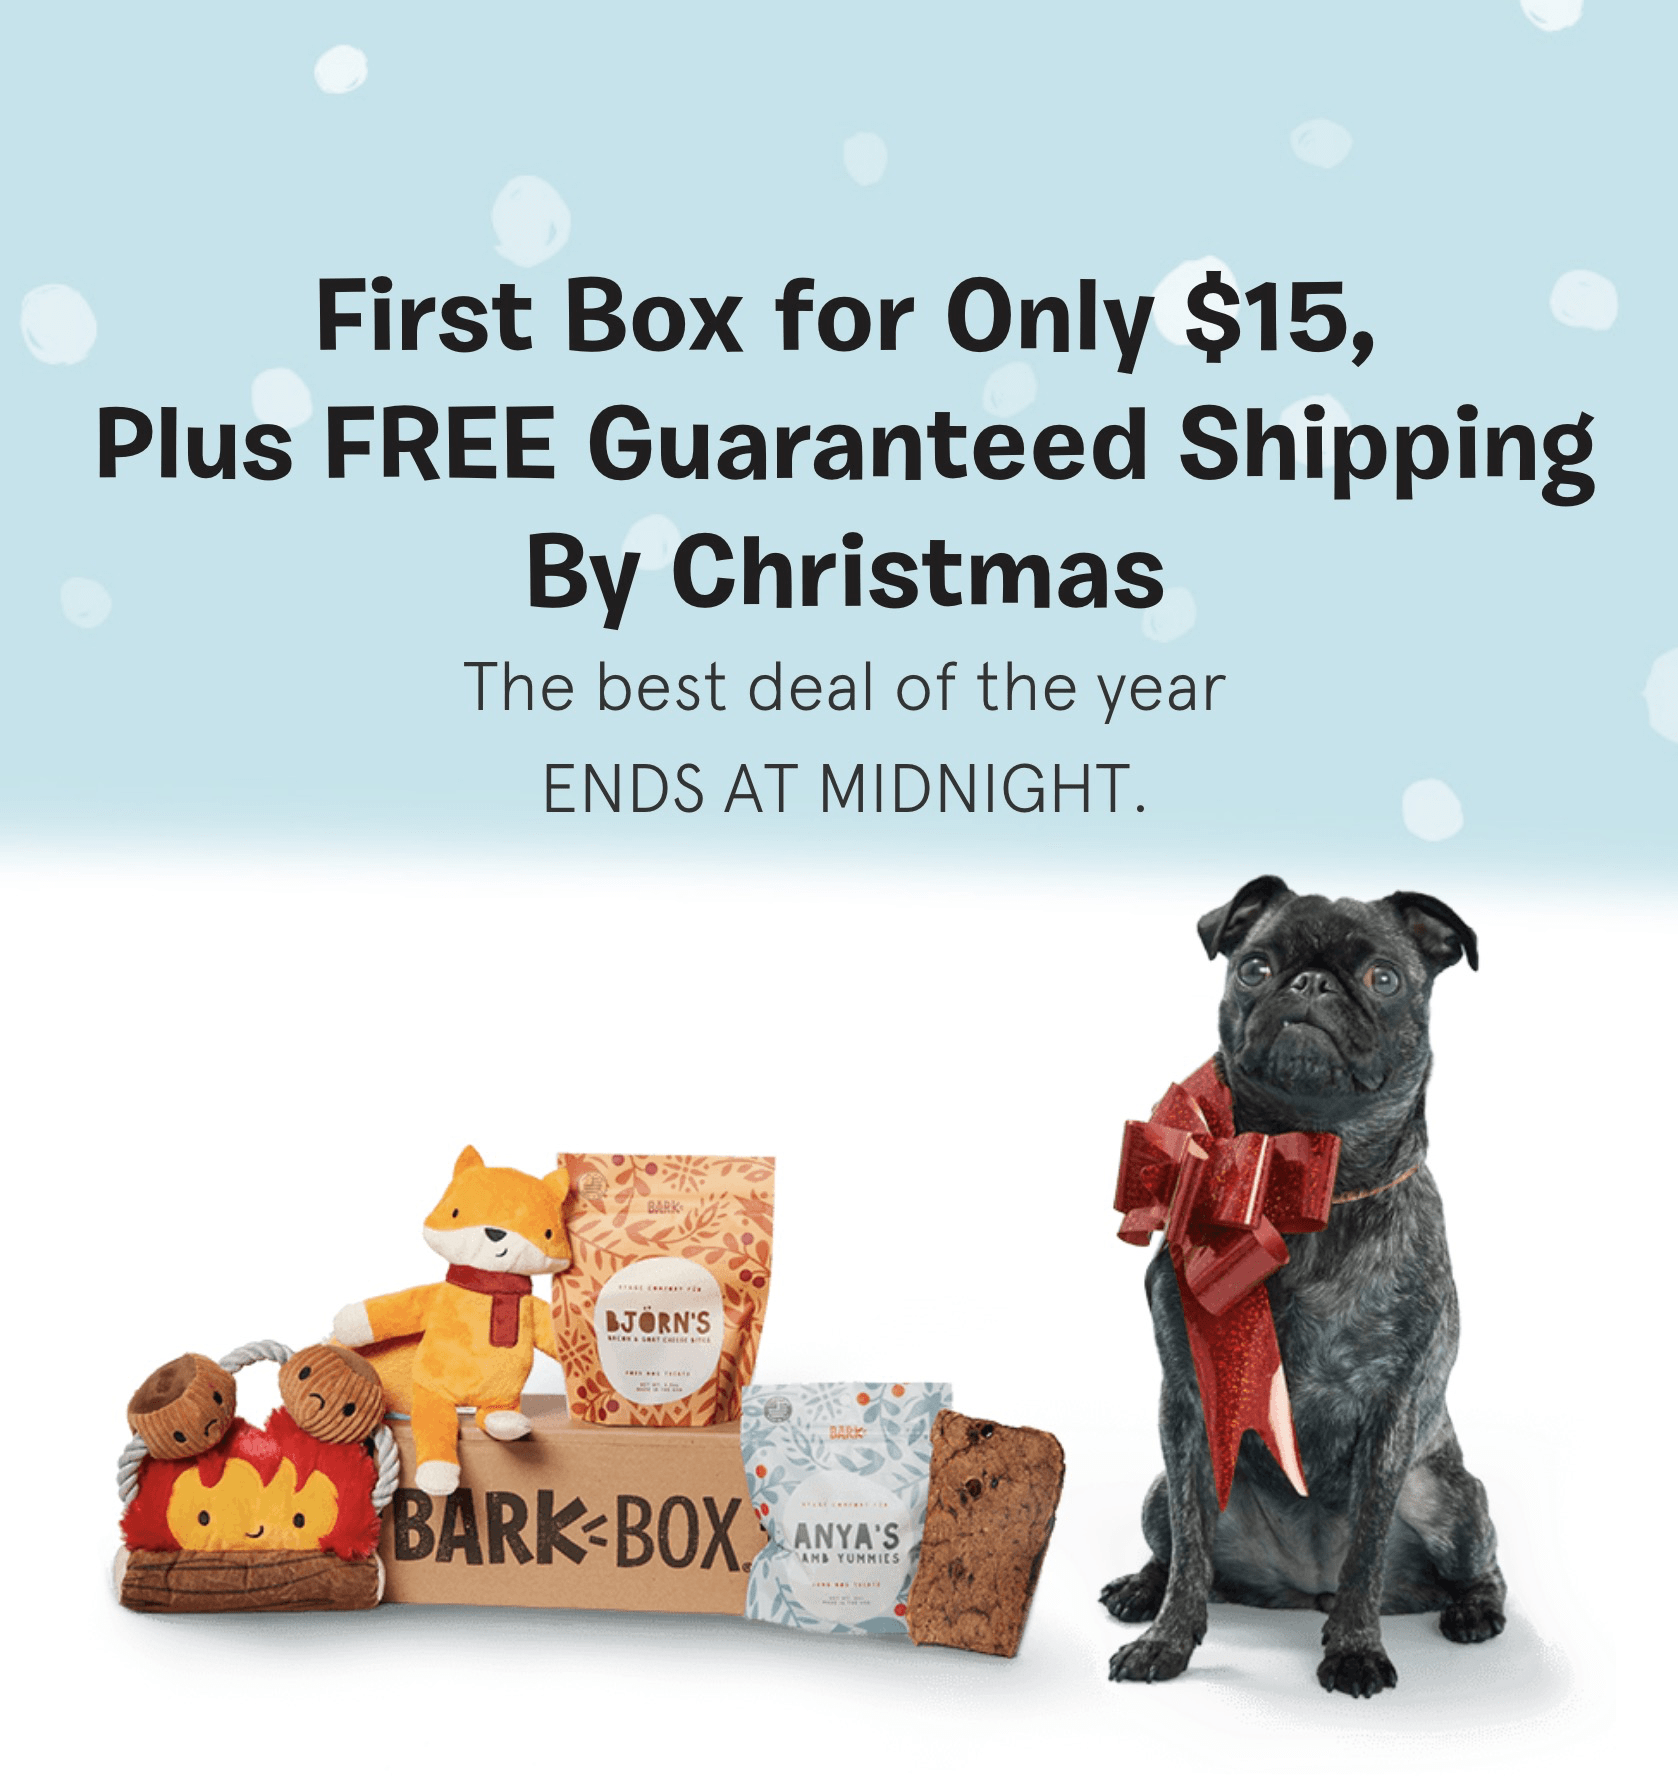 Barkbox Flash Sale EXTENDED! First BarkBox 50% Off Coupon + FREE Guaranteed Shipping!